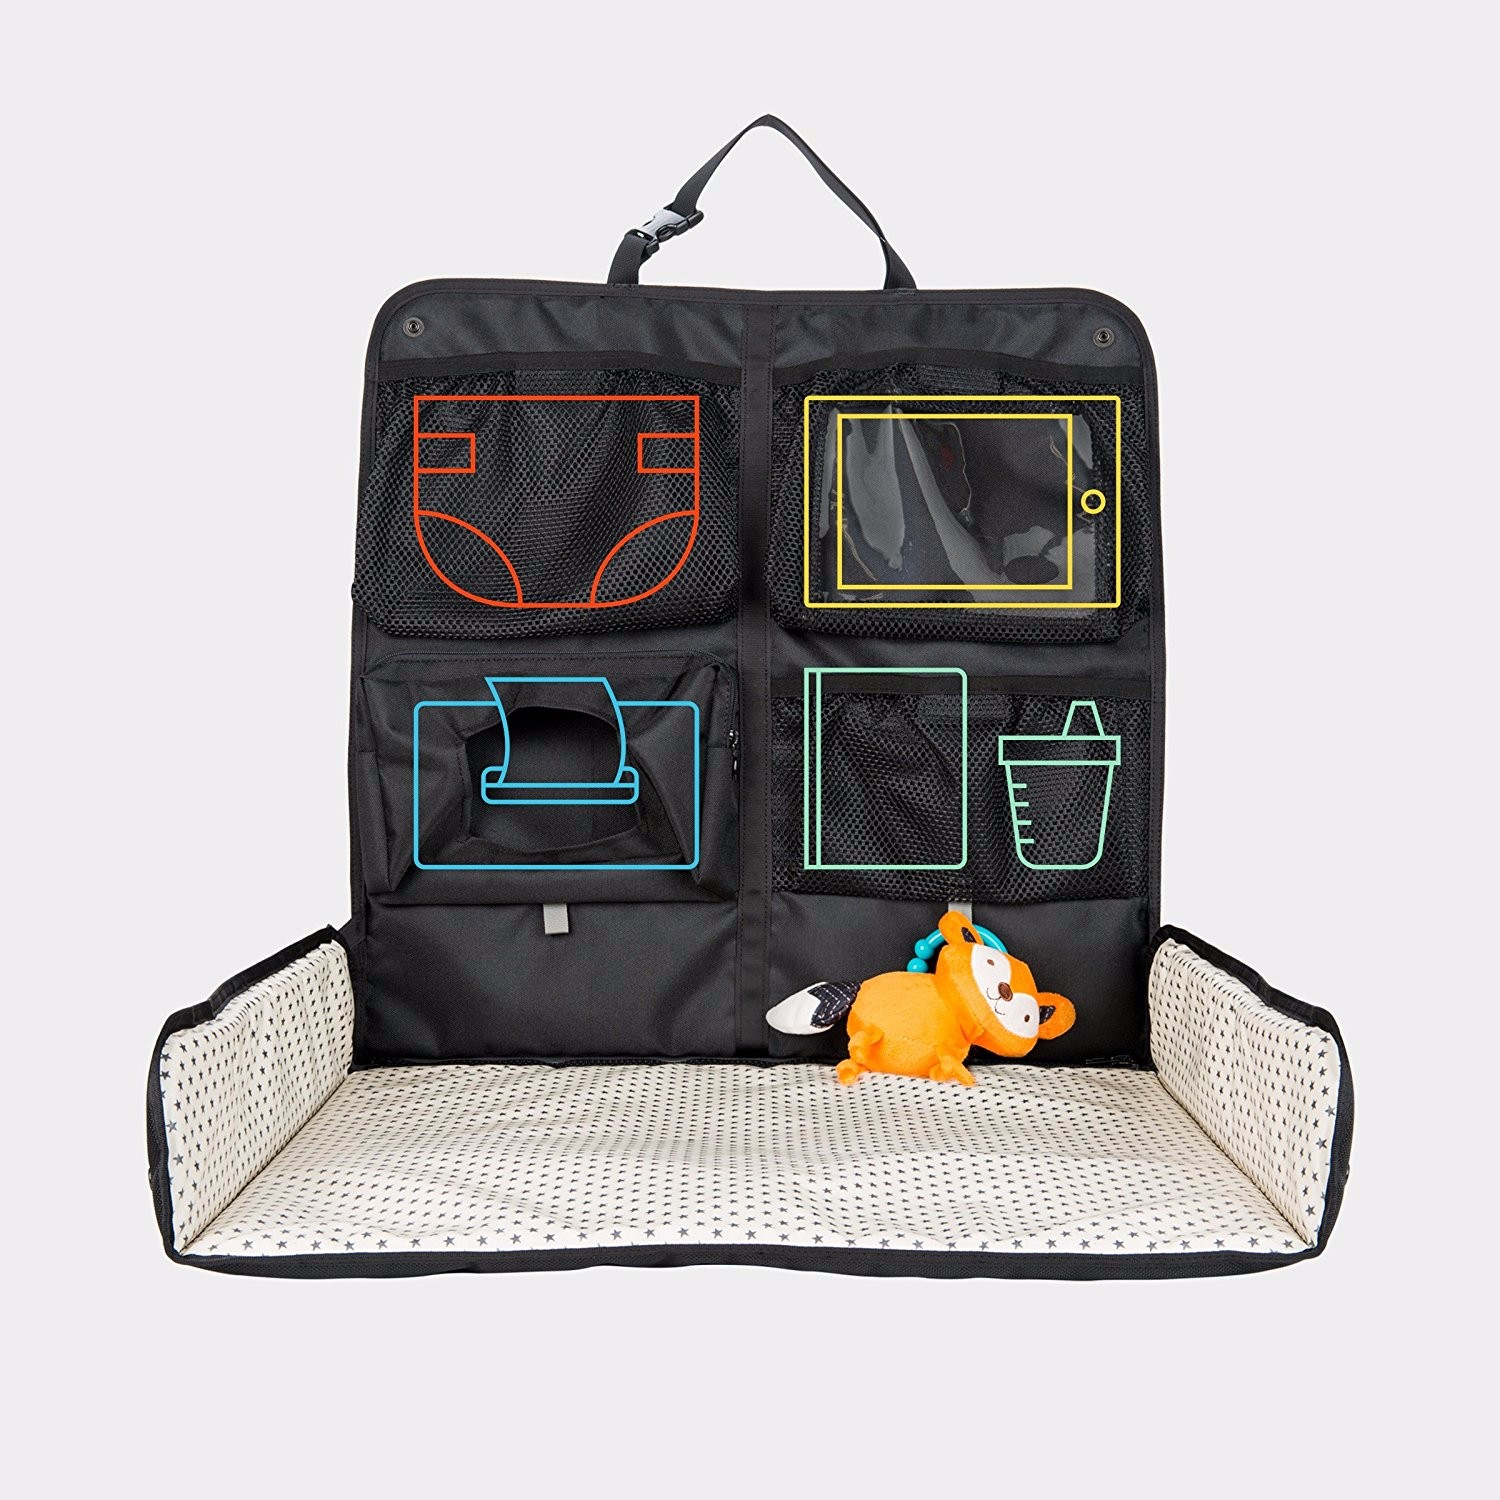 Travel Diaper Changing Station Manufacturers, Travel Diaper Changing Station Factory, Supply Travel Diaper Changing Station